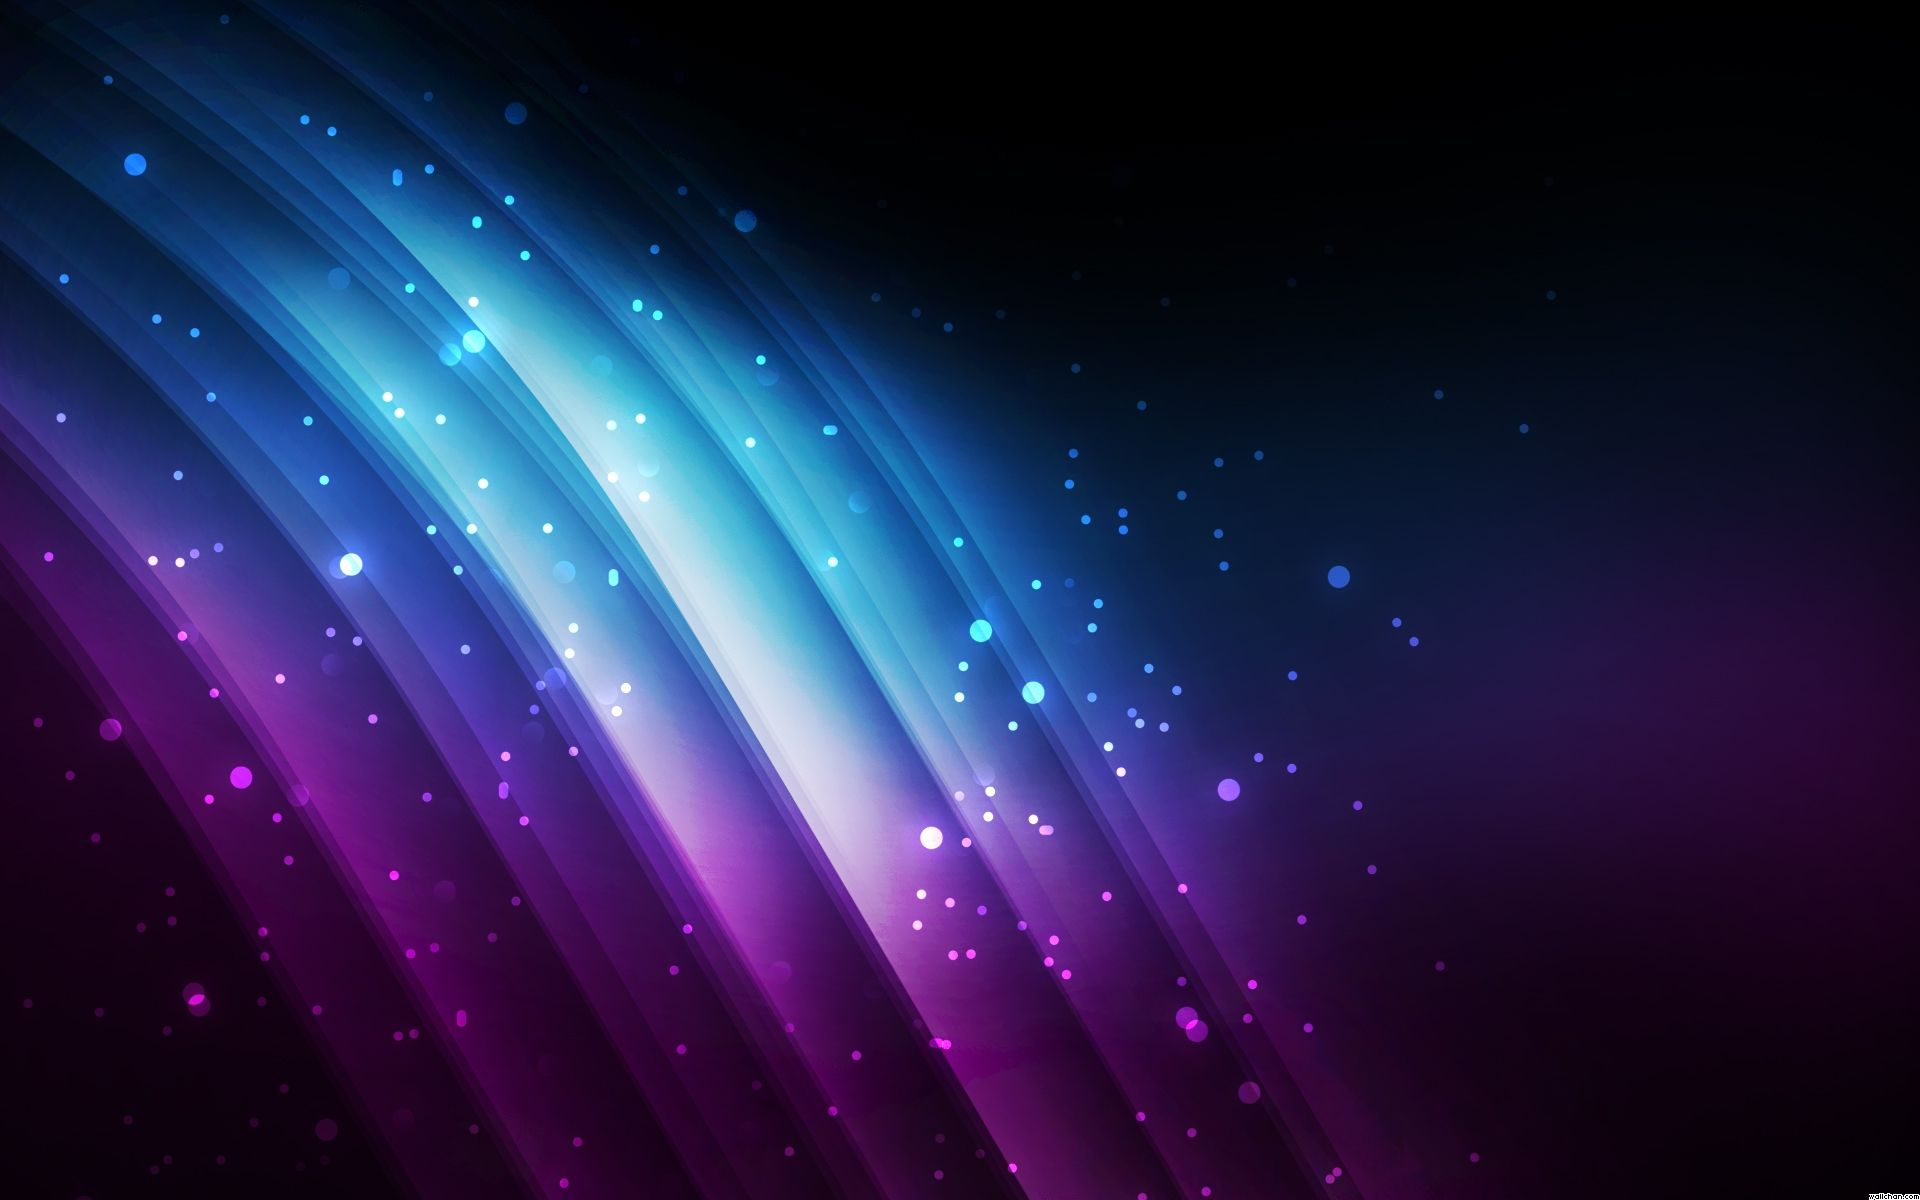 Purple sparkly background wallpaper gallery full hd - Purple glitter wallpaper hd ...